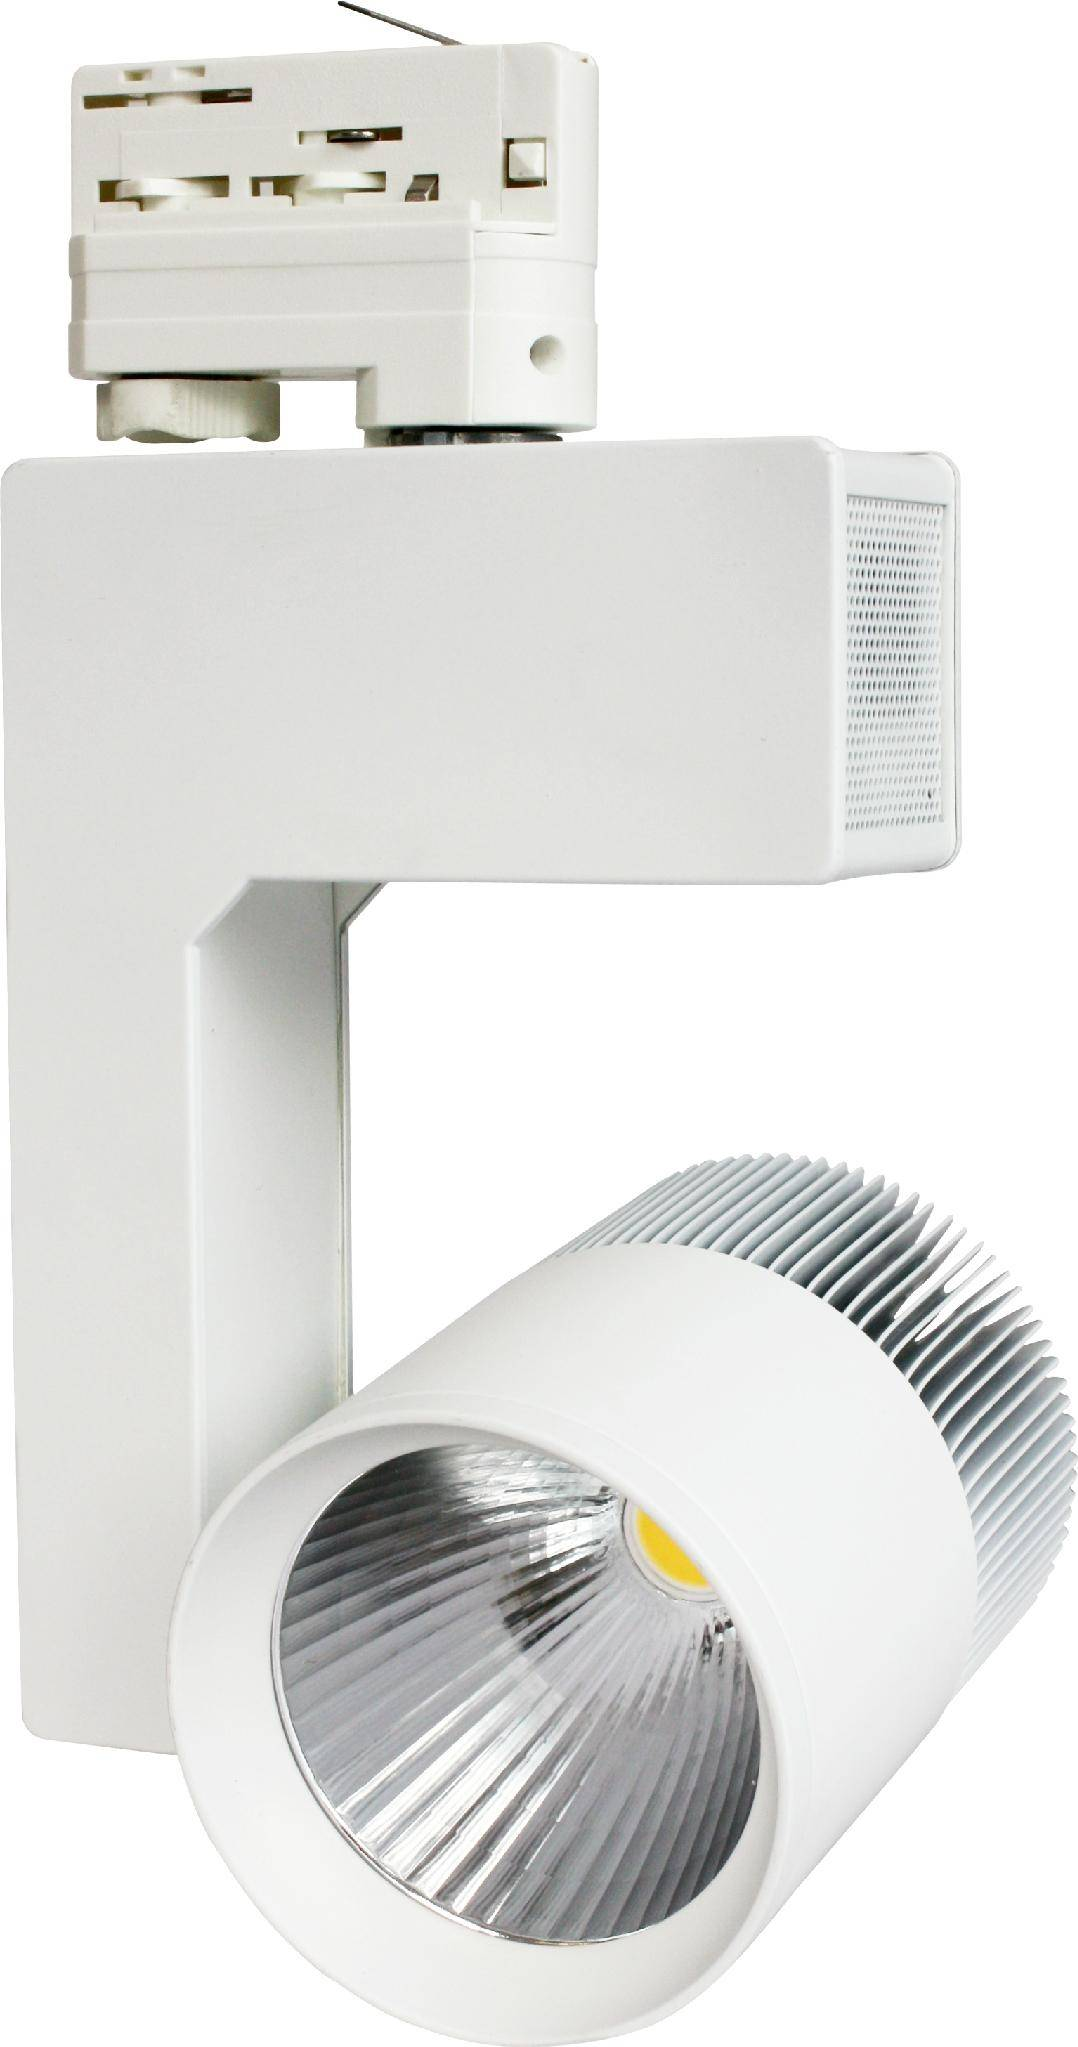 LED track light 30W for shops